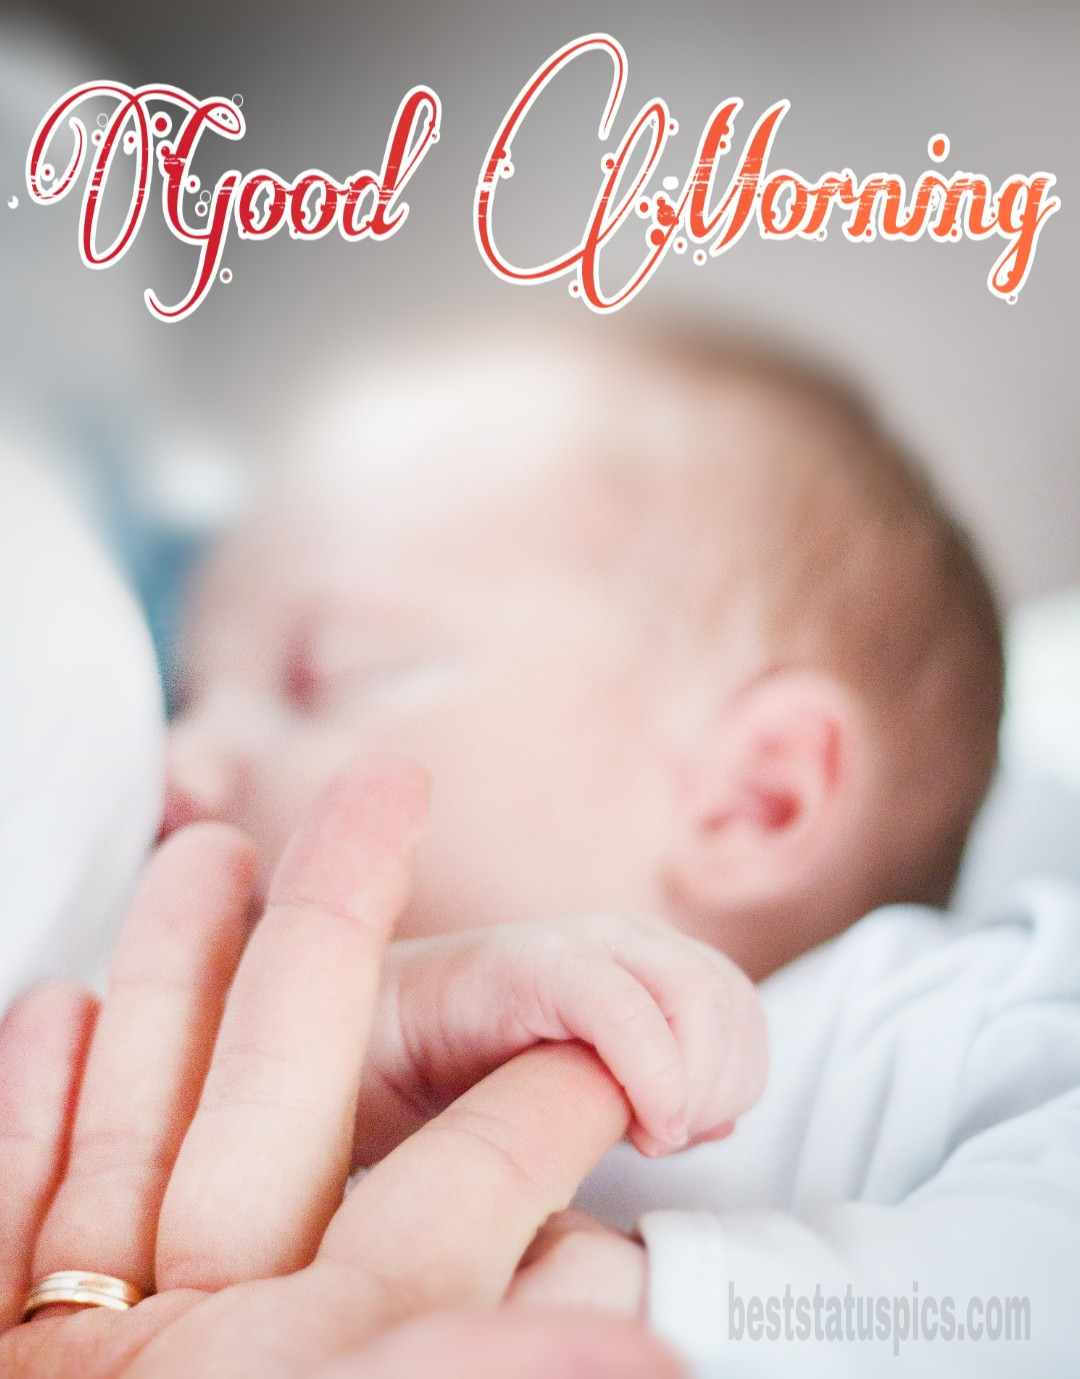 Cute baby good morning HD pic download